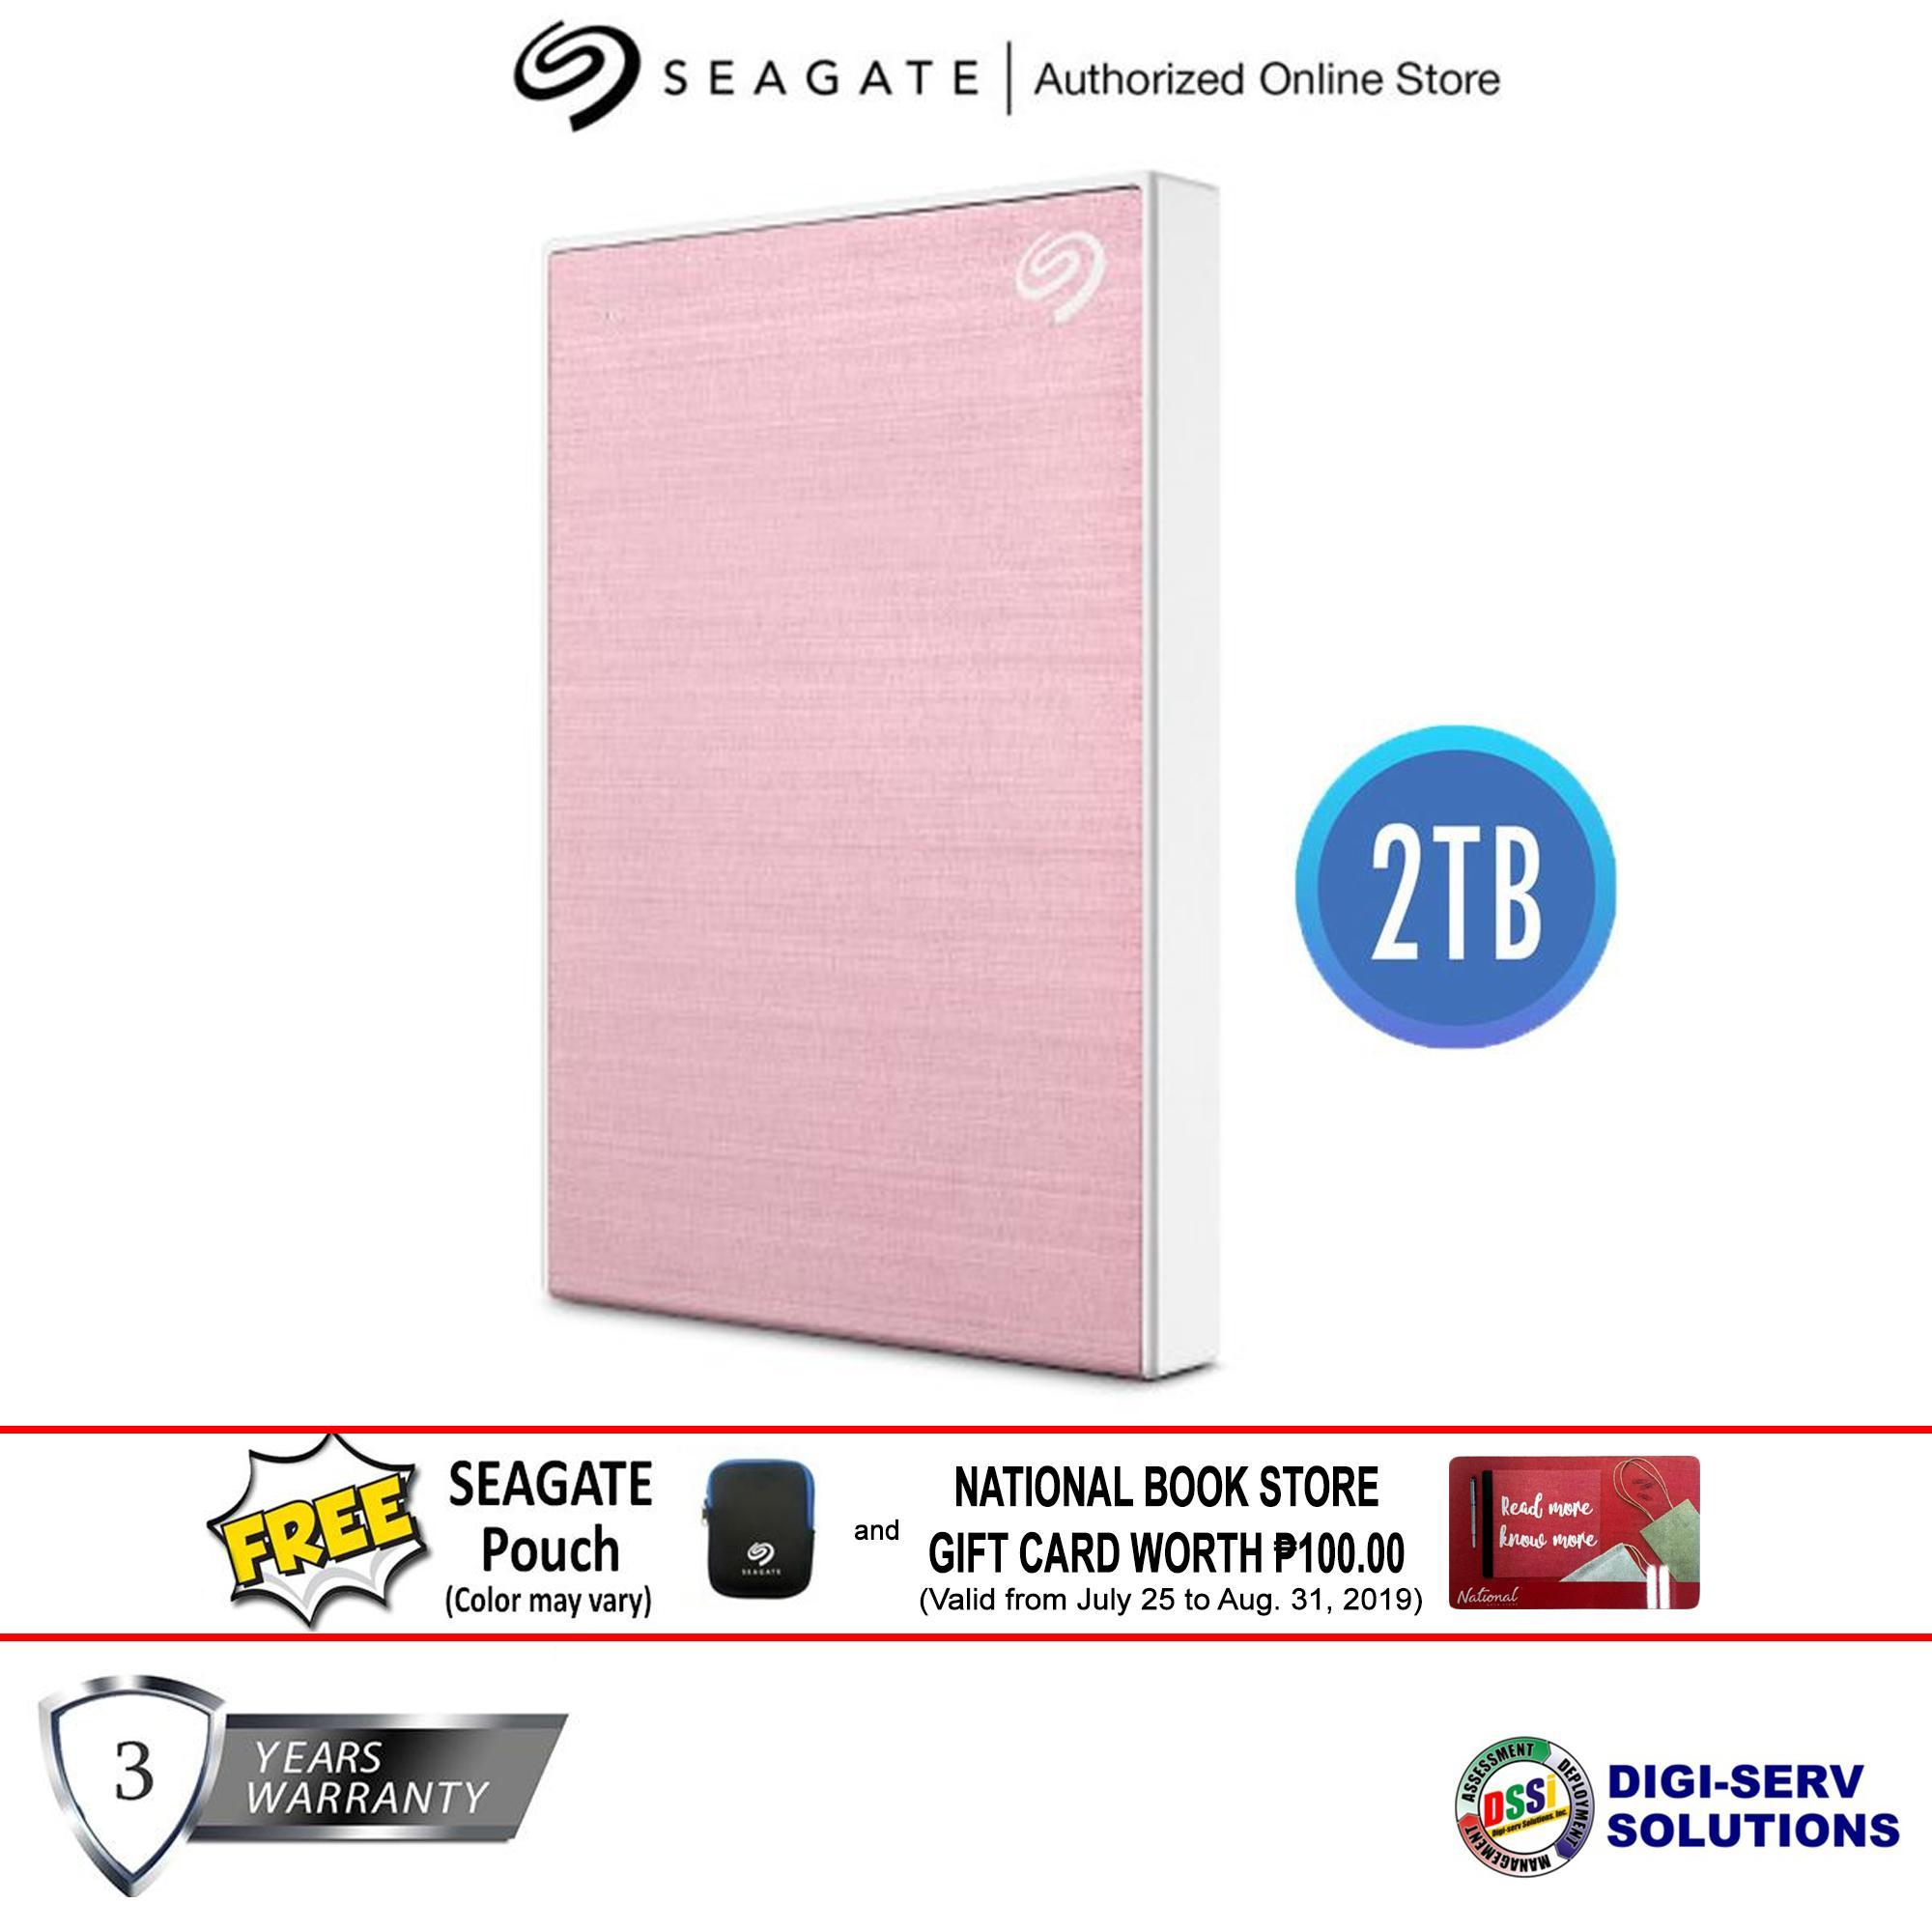 Seagate Backup Plus (New) 2TB (RoseGold) Slim Portable Drive with  High-Speed USB 3 0 & 2 0 Connectivity, Plug-and-play with Mac & PC, 3 Years  Warranty